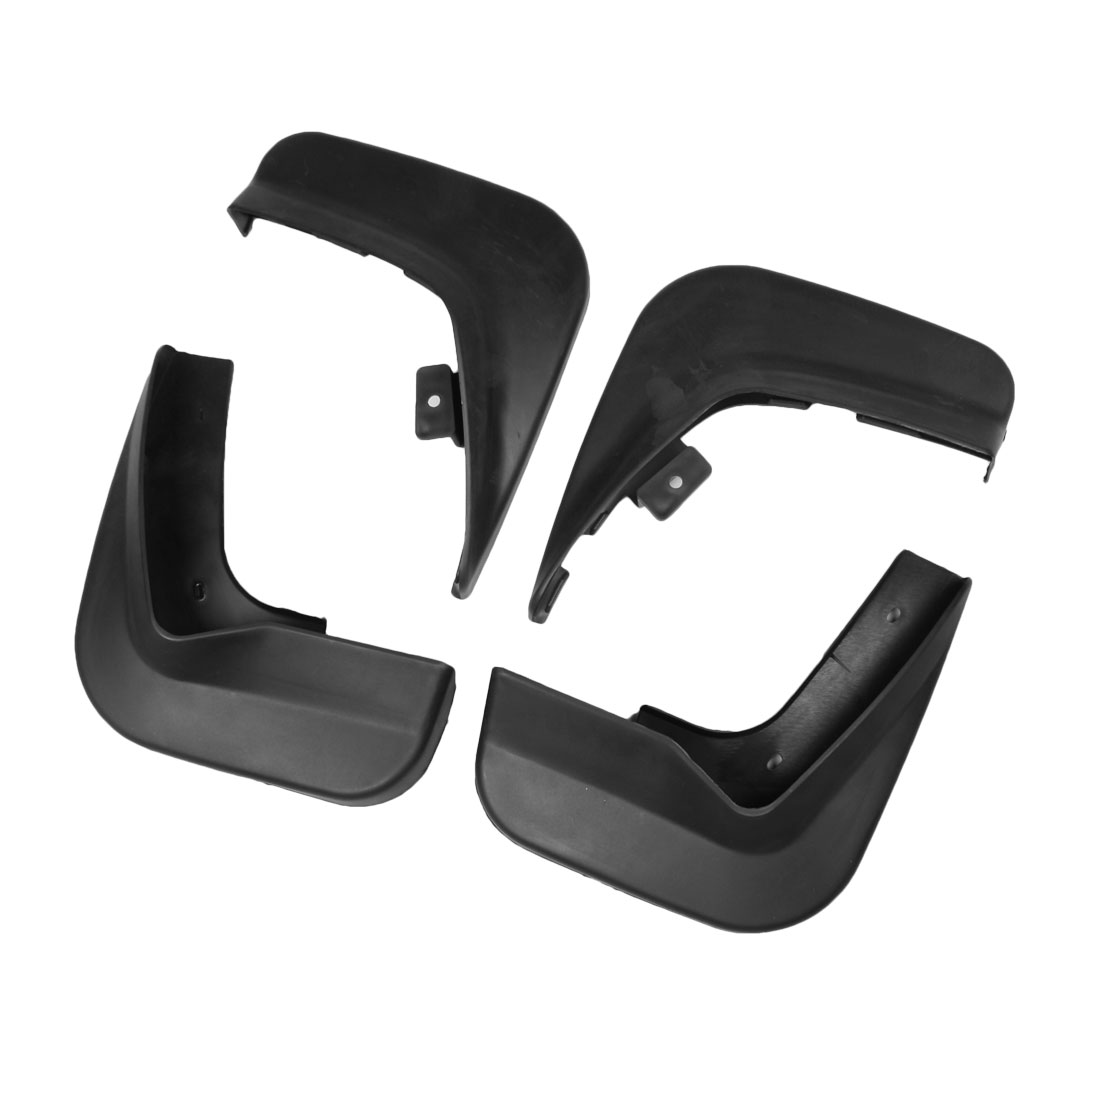 Car Vehicle Shield Splash Guards Mud Flap Front + Rear Set for Volkswagen Passat